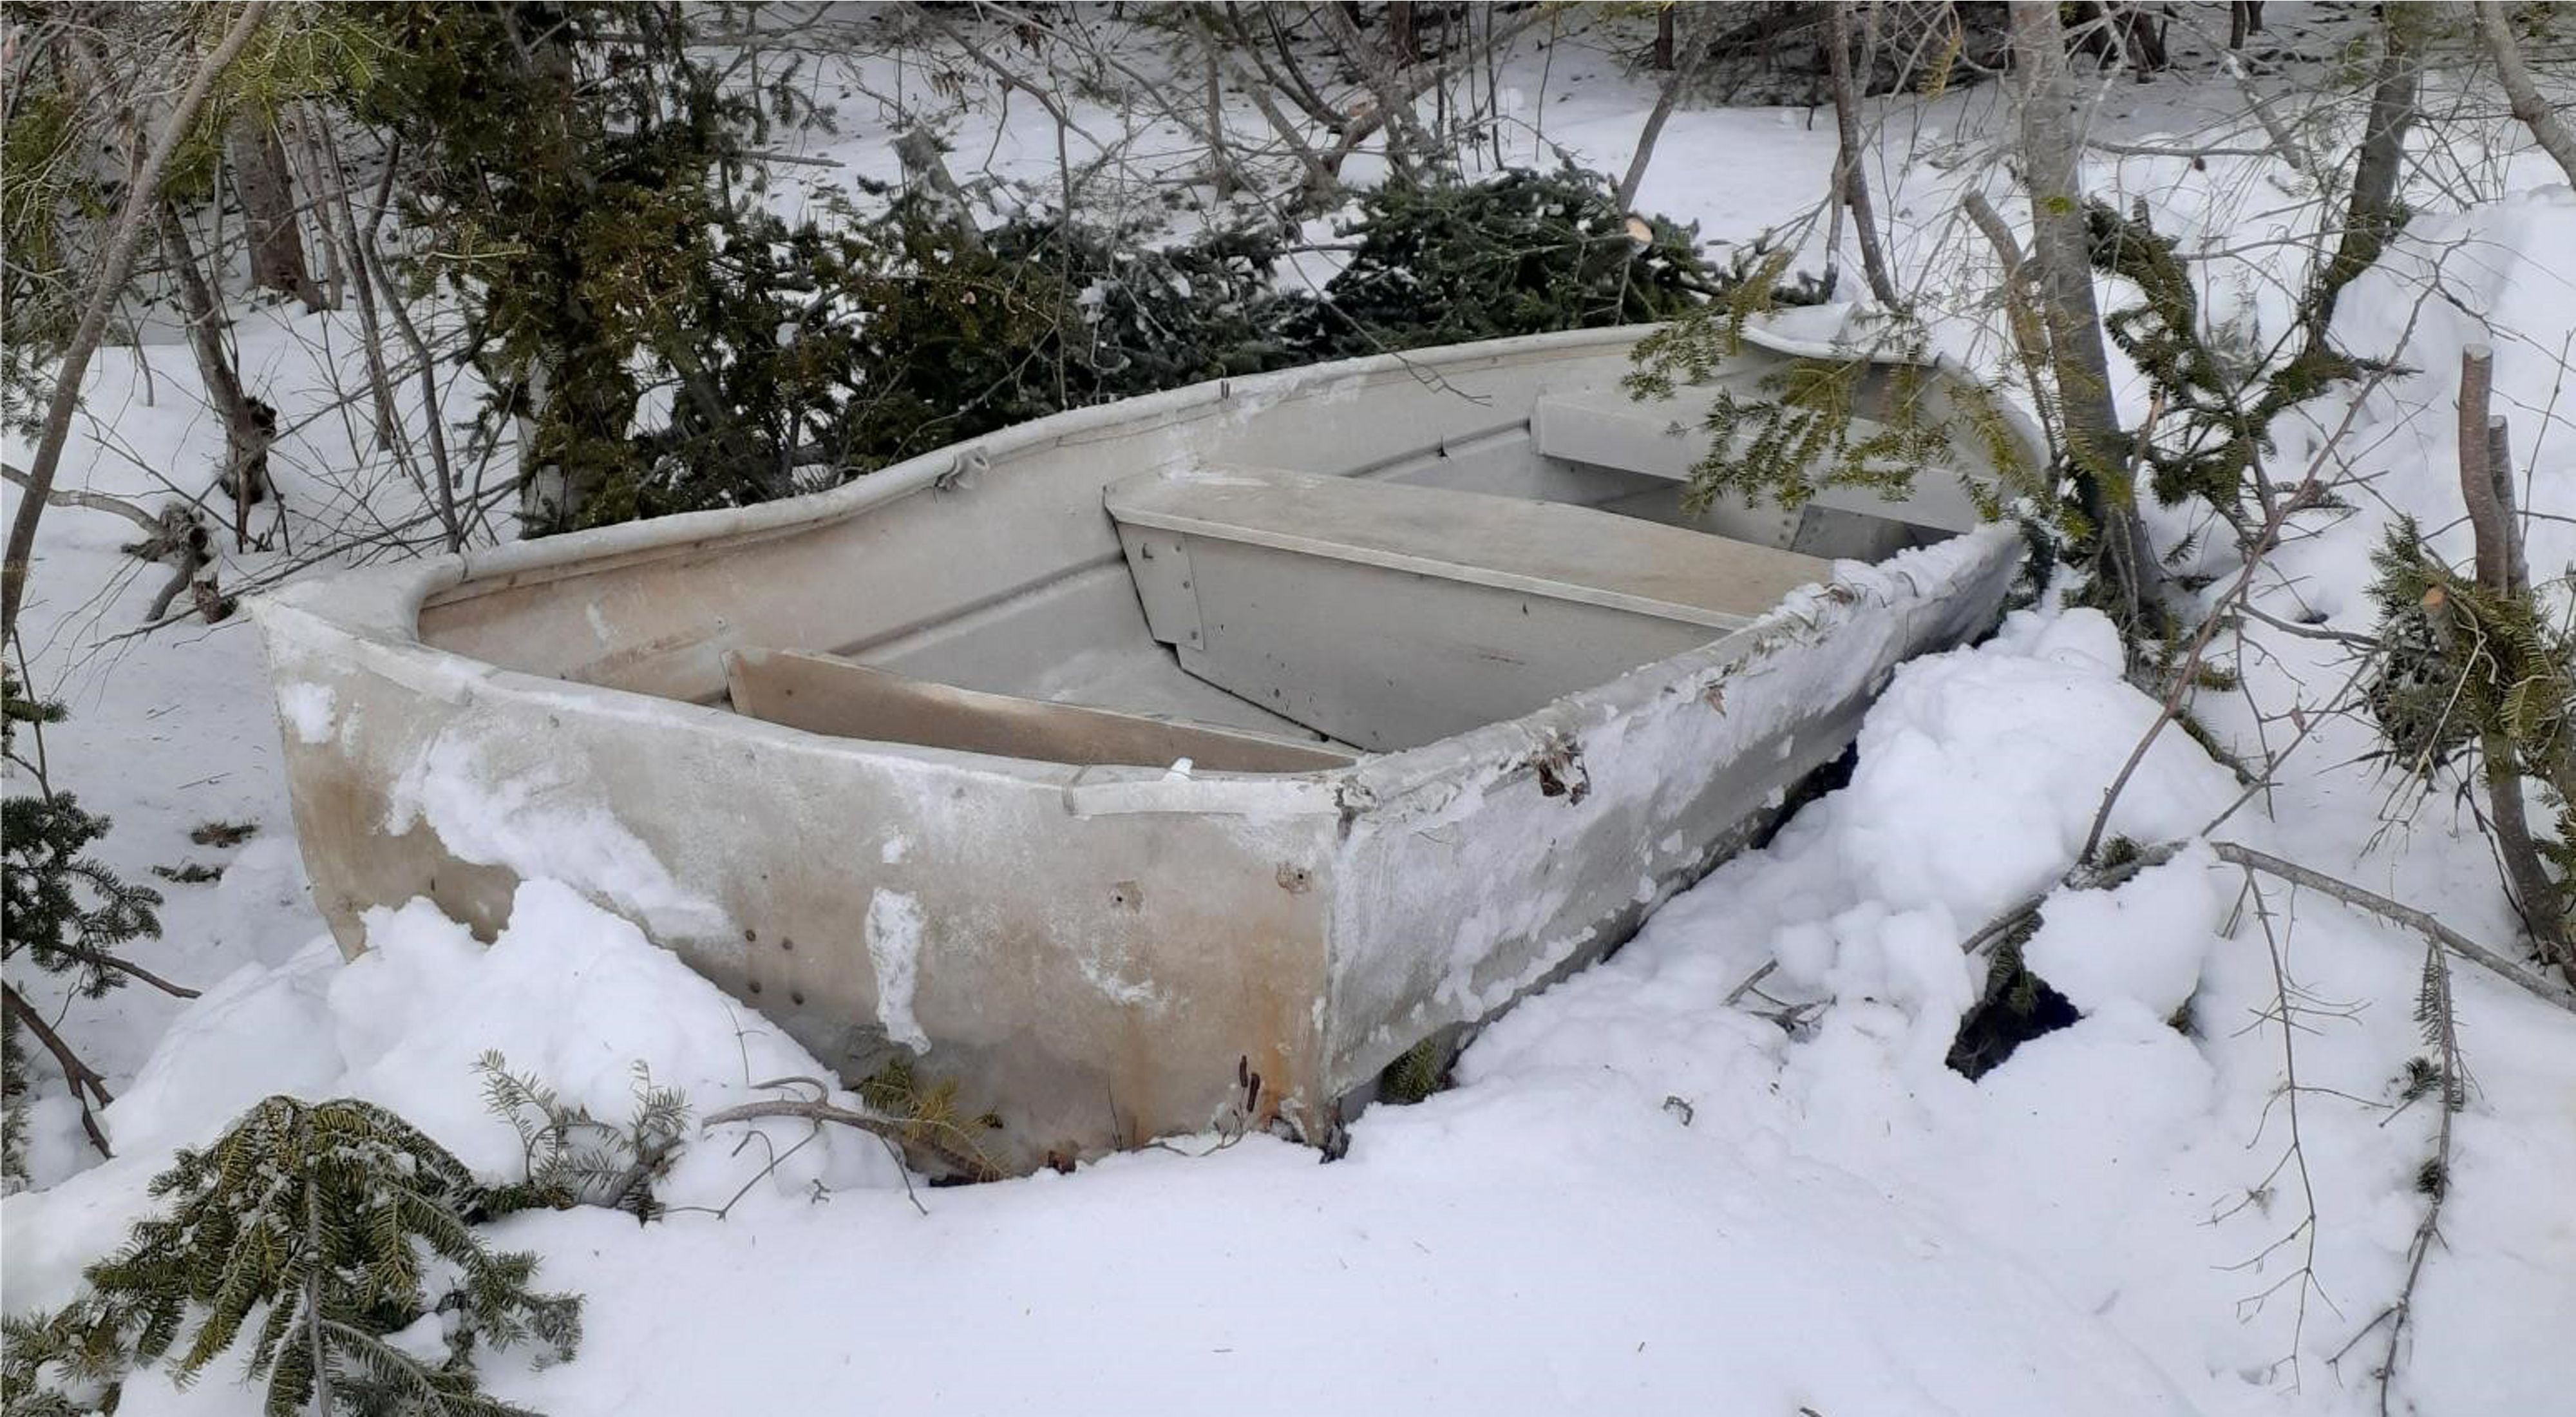 A dented aluminum boat sits in snow in the woods.